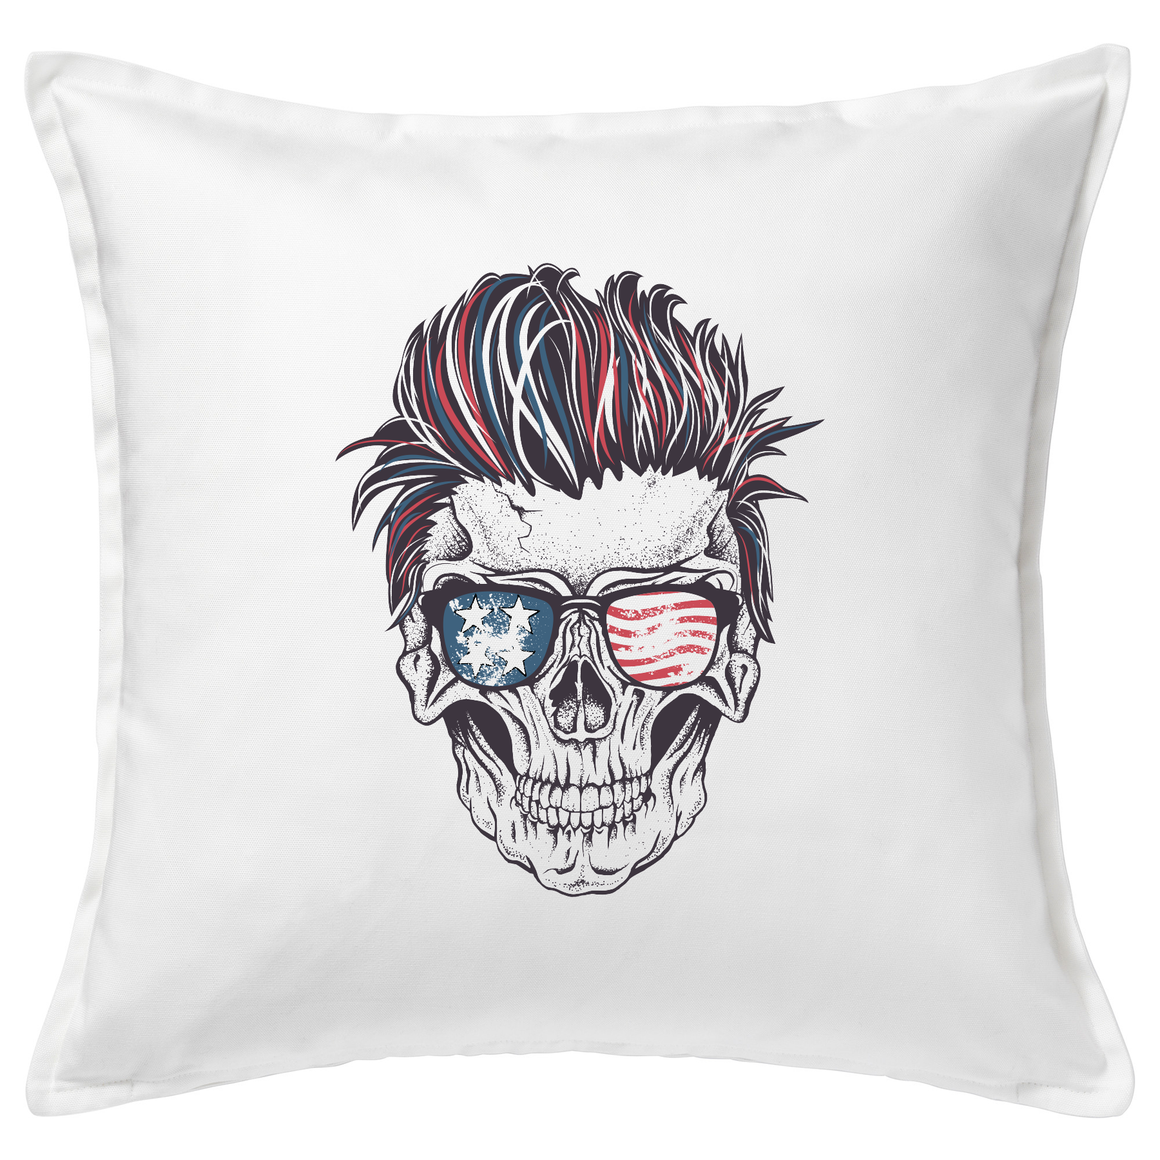 Patriotic Rocker Skull Cushion Cover